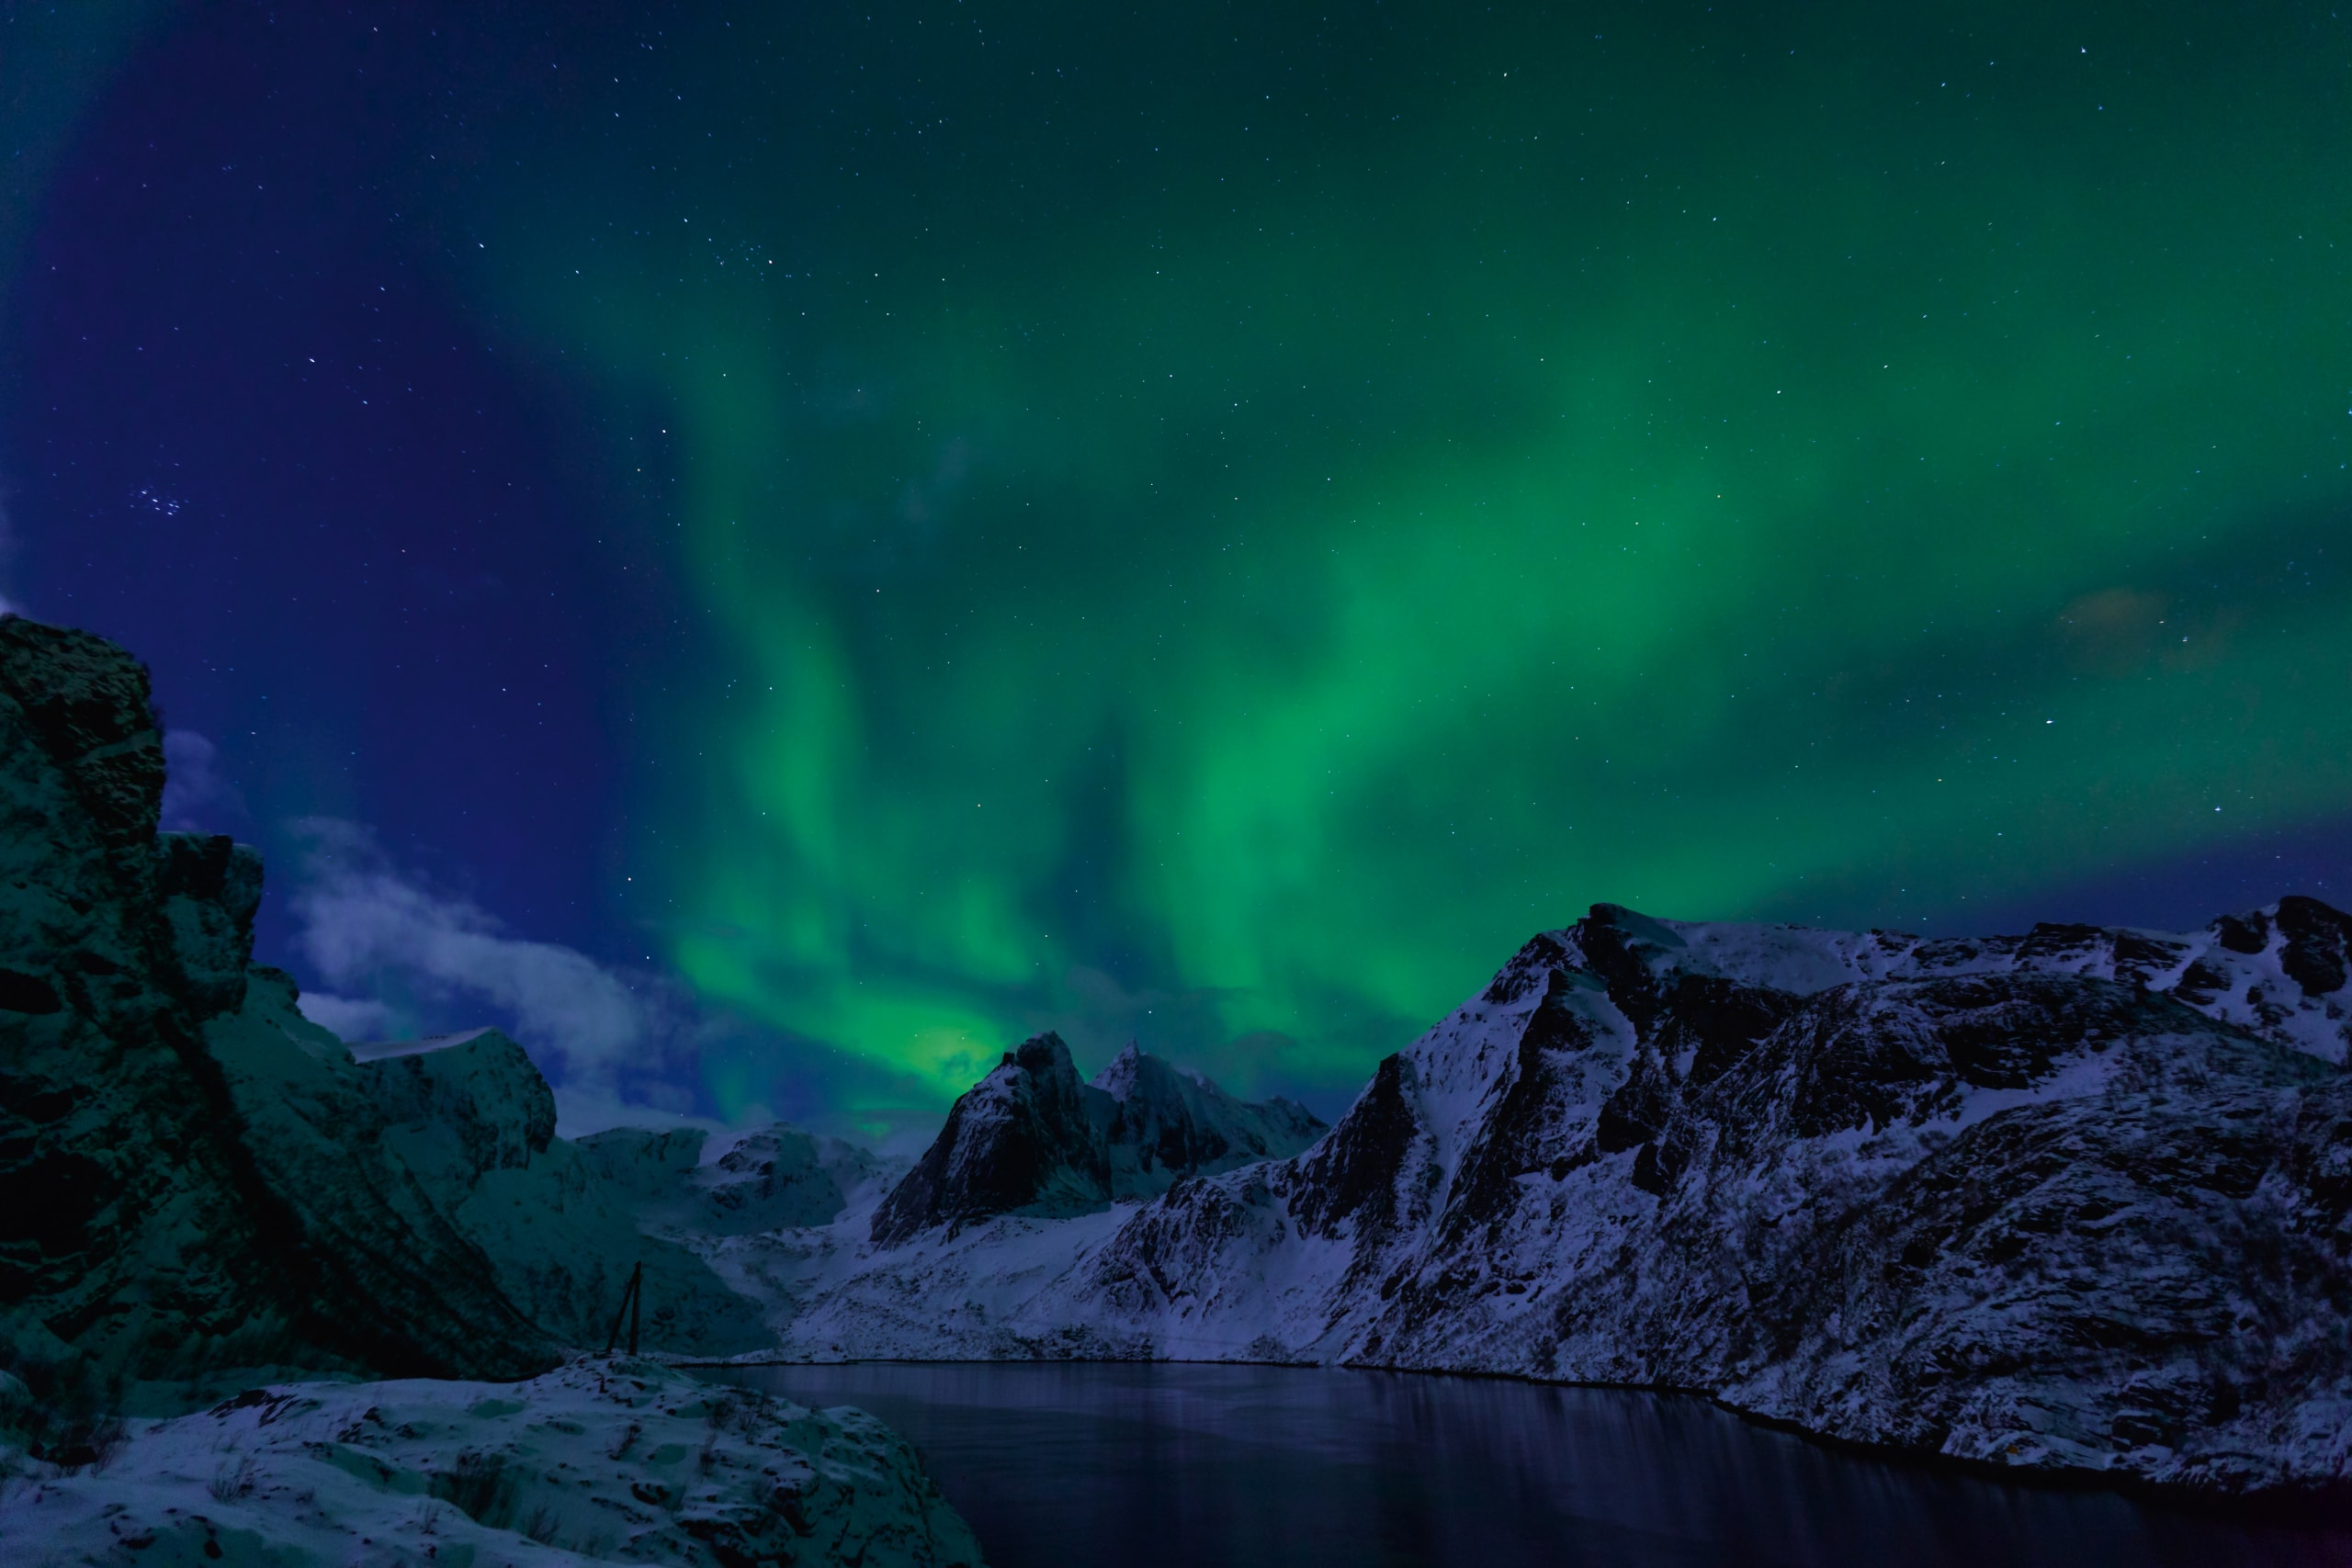 Northern lights over Lofoten's sharp mountains.